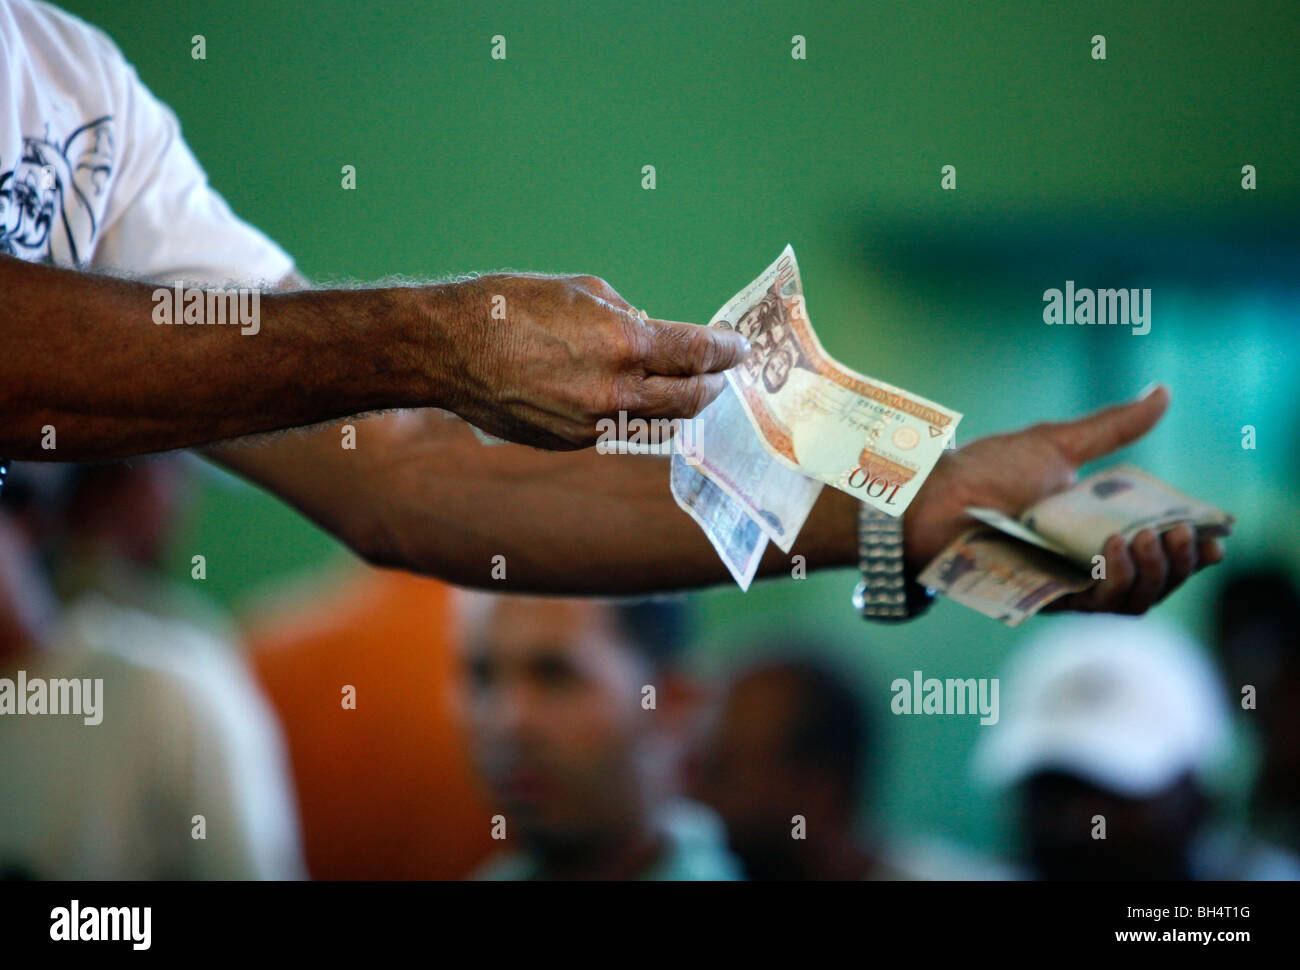 Betting money changes hands at a cockfight, Dominican Republic Stock Photo